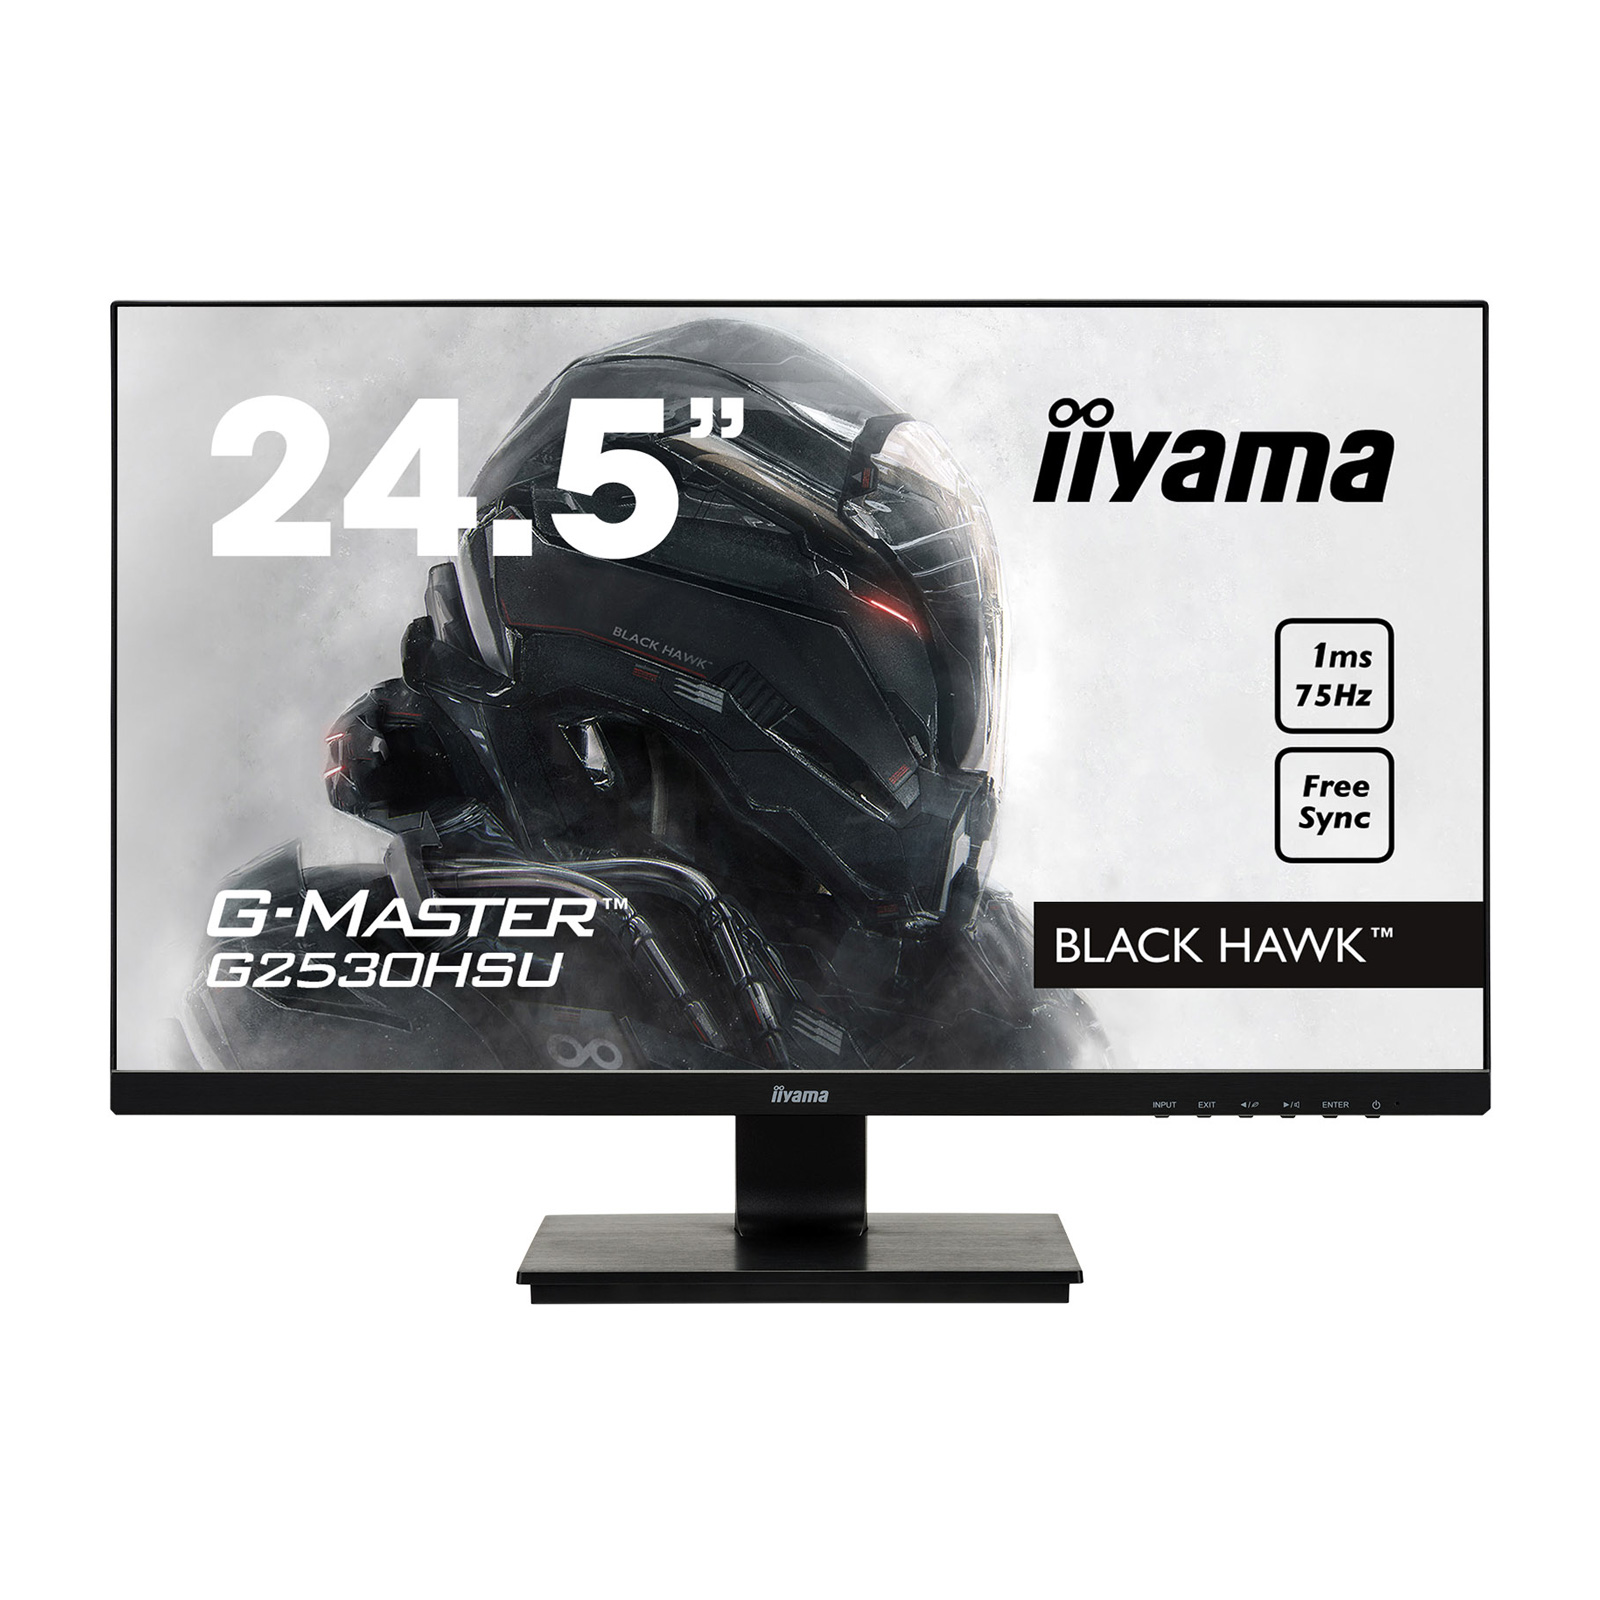 iiyama 24 5 led g master g2530hsu b1 black hawk ecran pc iiyama sur. Black Bedroom Furniture Sets. Home Design Ideas